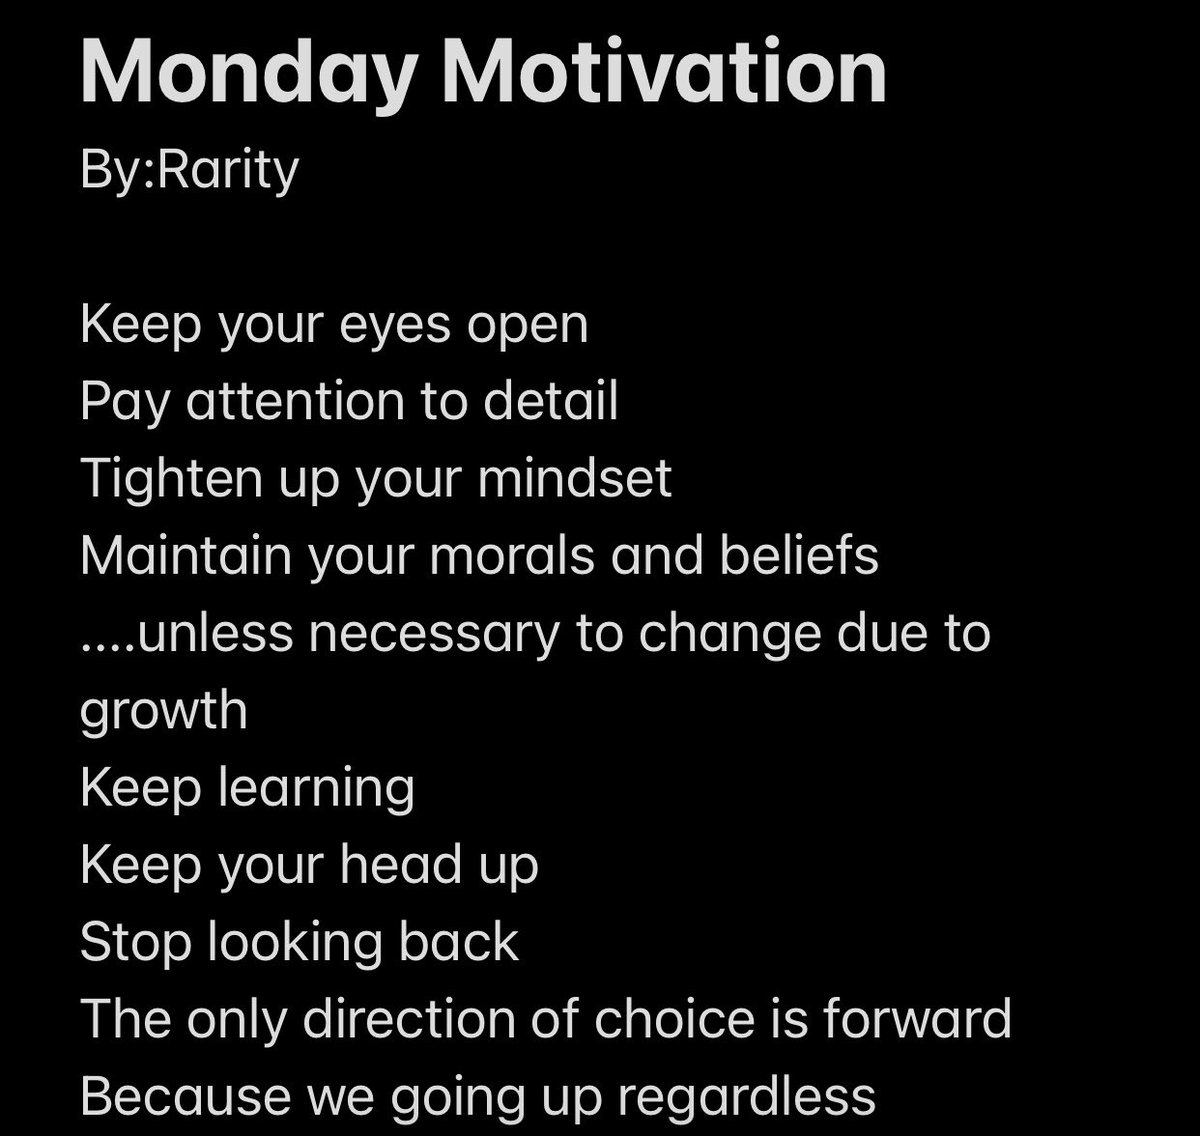 #MondayMotivation